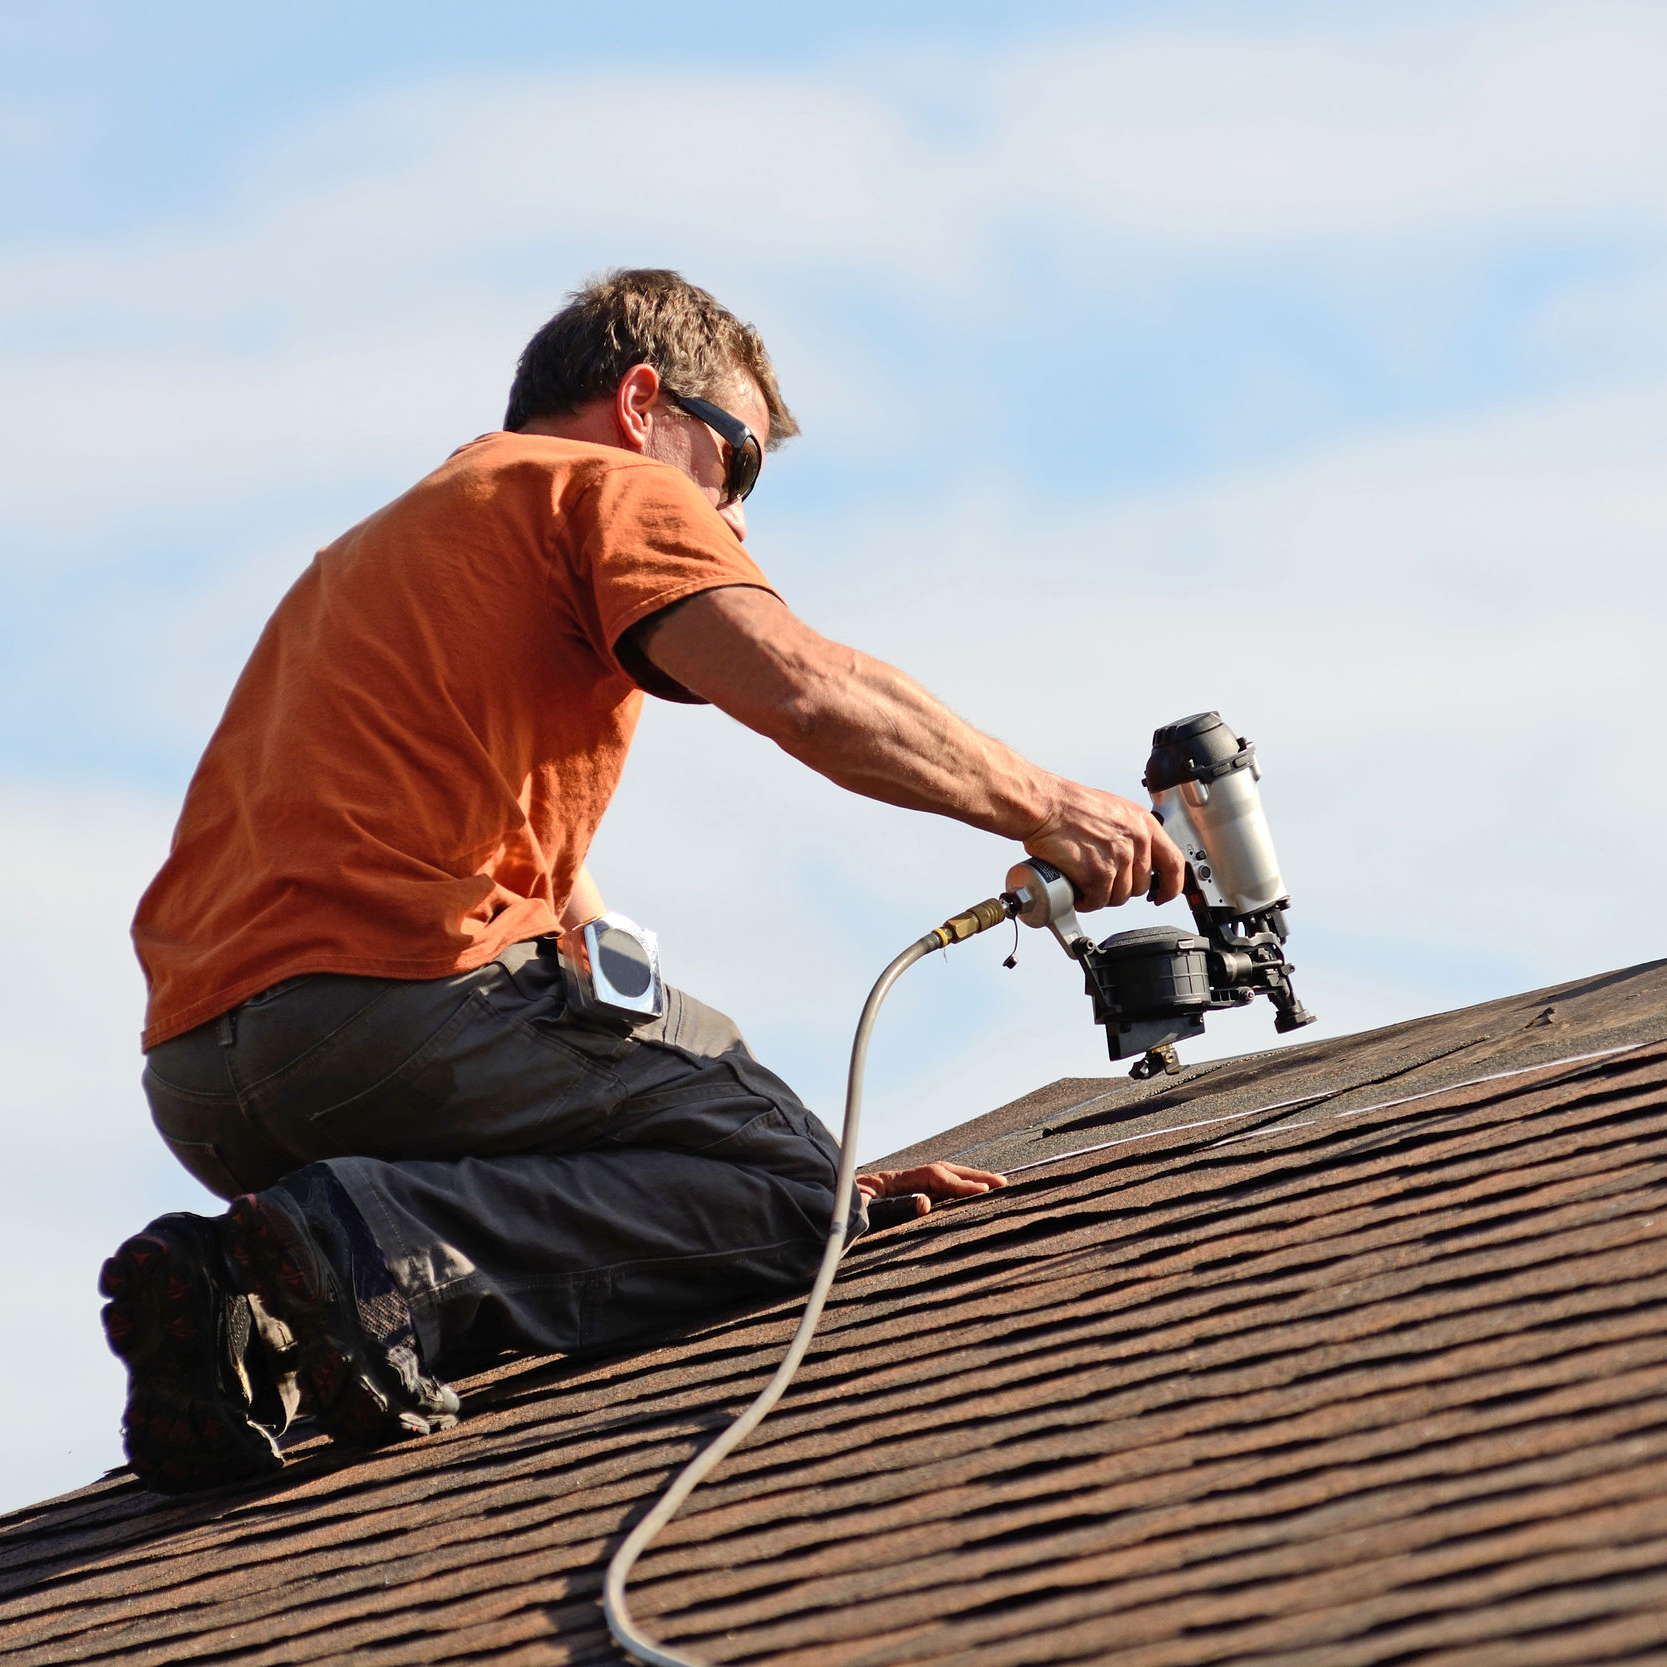 A roofer repairing a residential roof